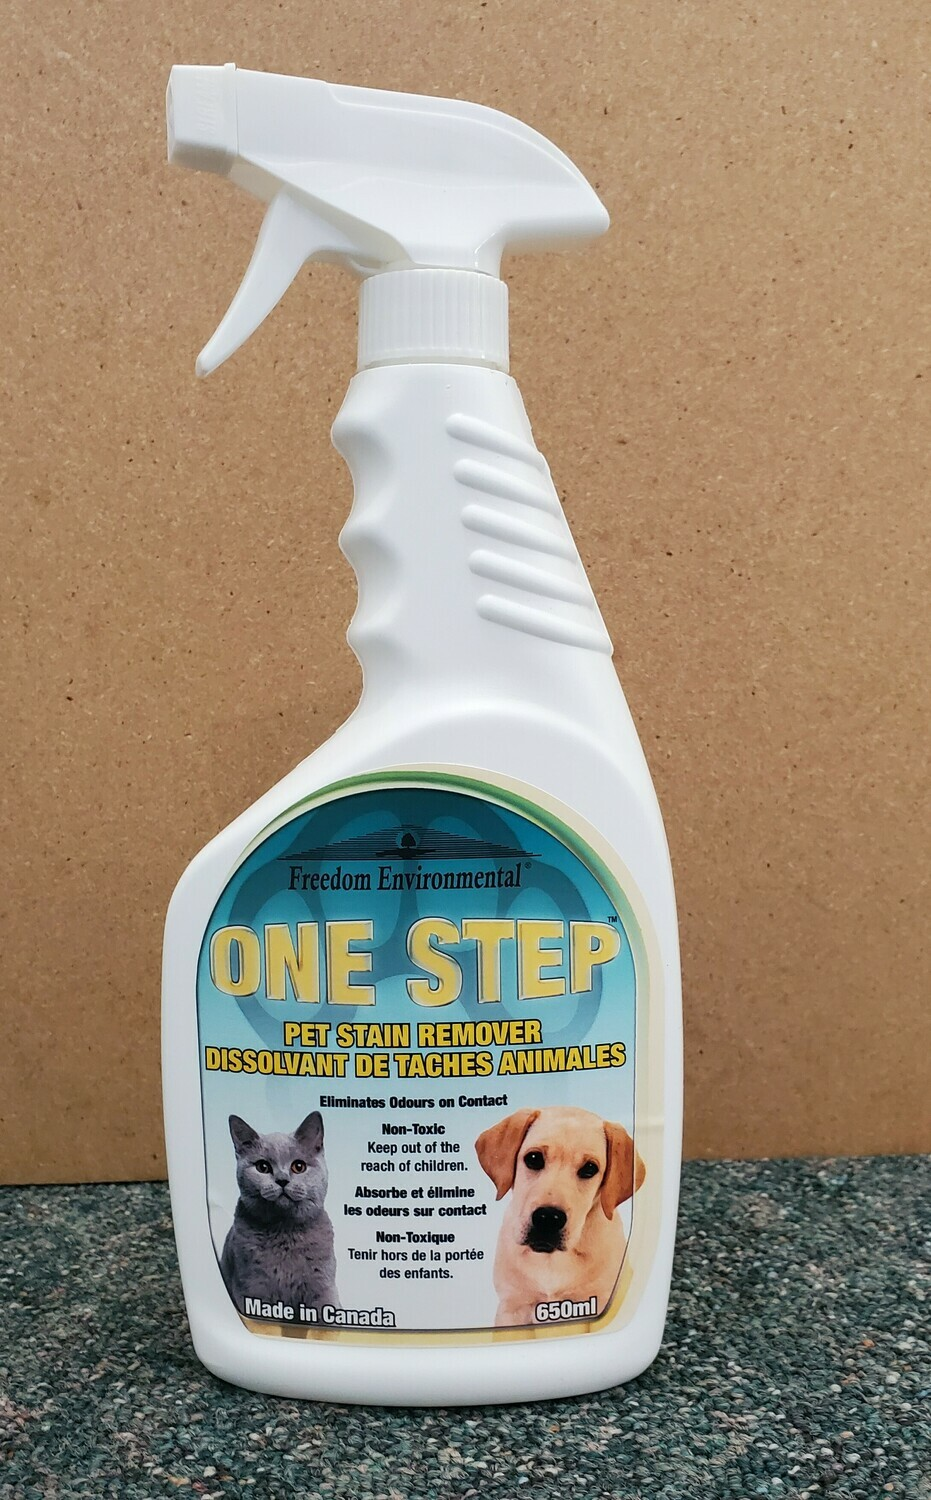 One Step Pet Stain Remover